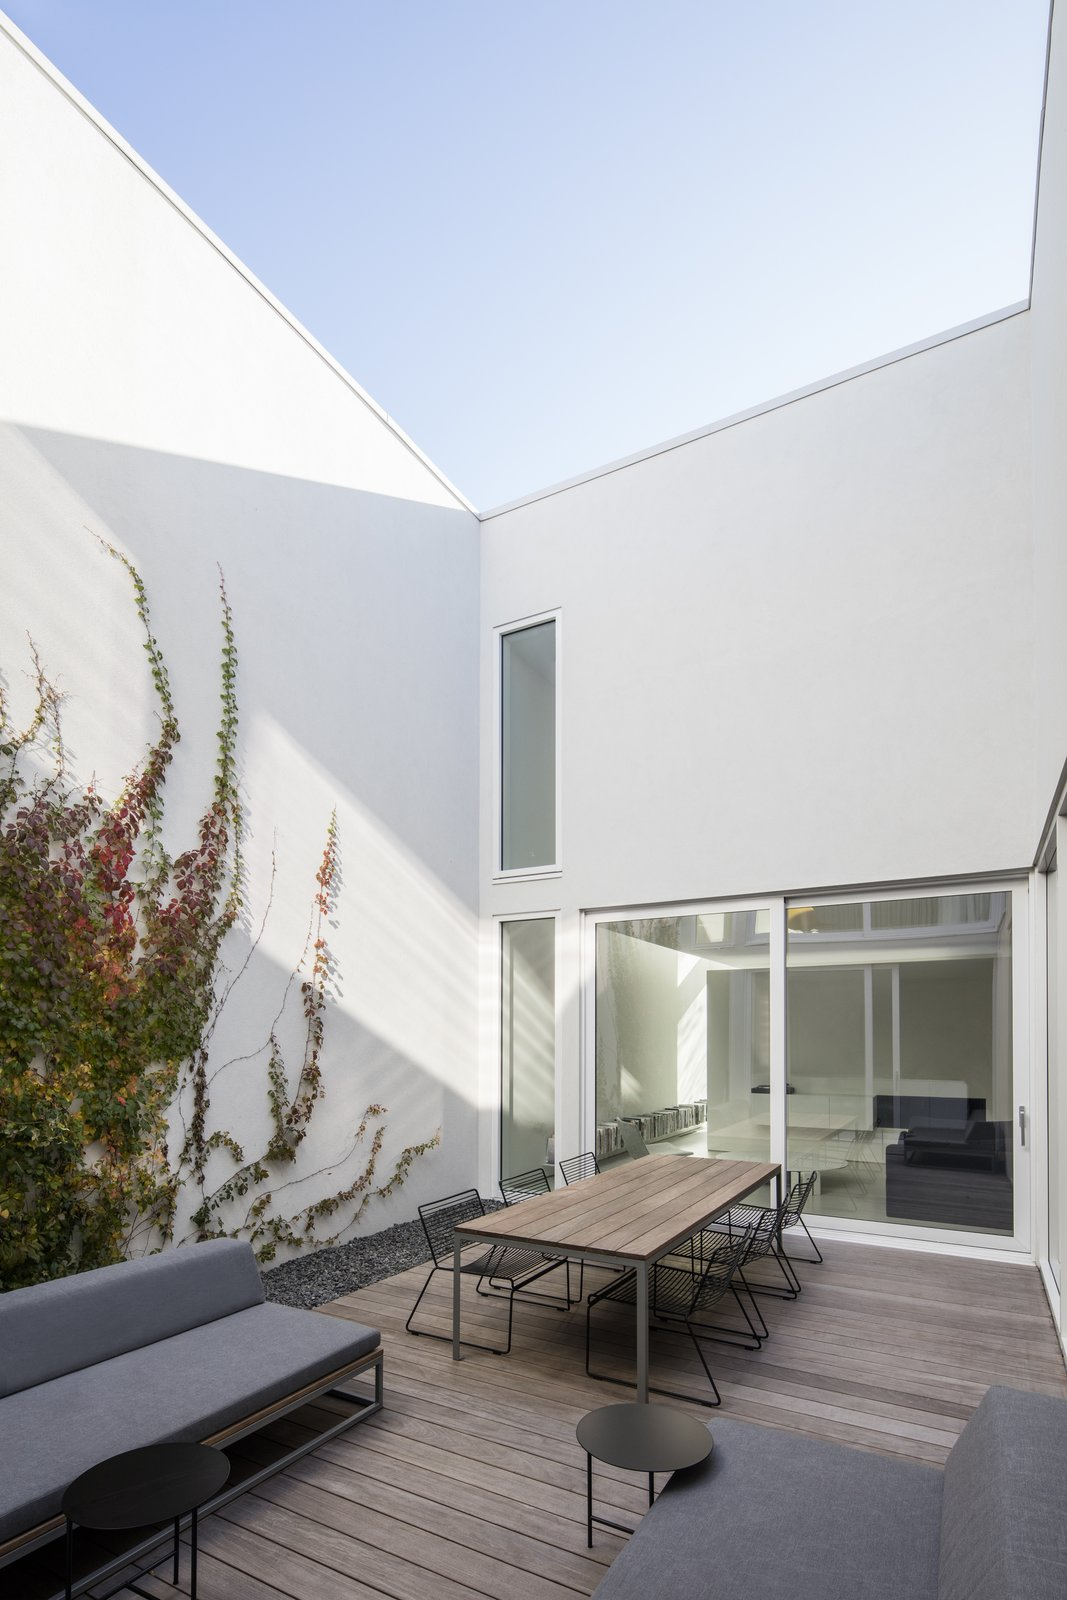 Outdoor, Raised Planters, Wood Patio, Porch, Deck, Garden, and Hardscapes Central courtyard. The white colour, omnipresent, acts as a reflective surface and complexifies light effects.  Best Photos from The House on Drolet Street